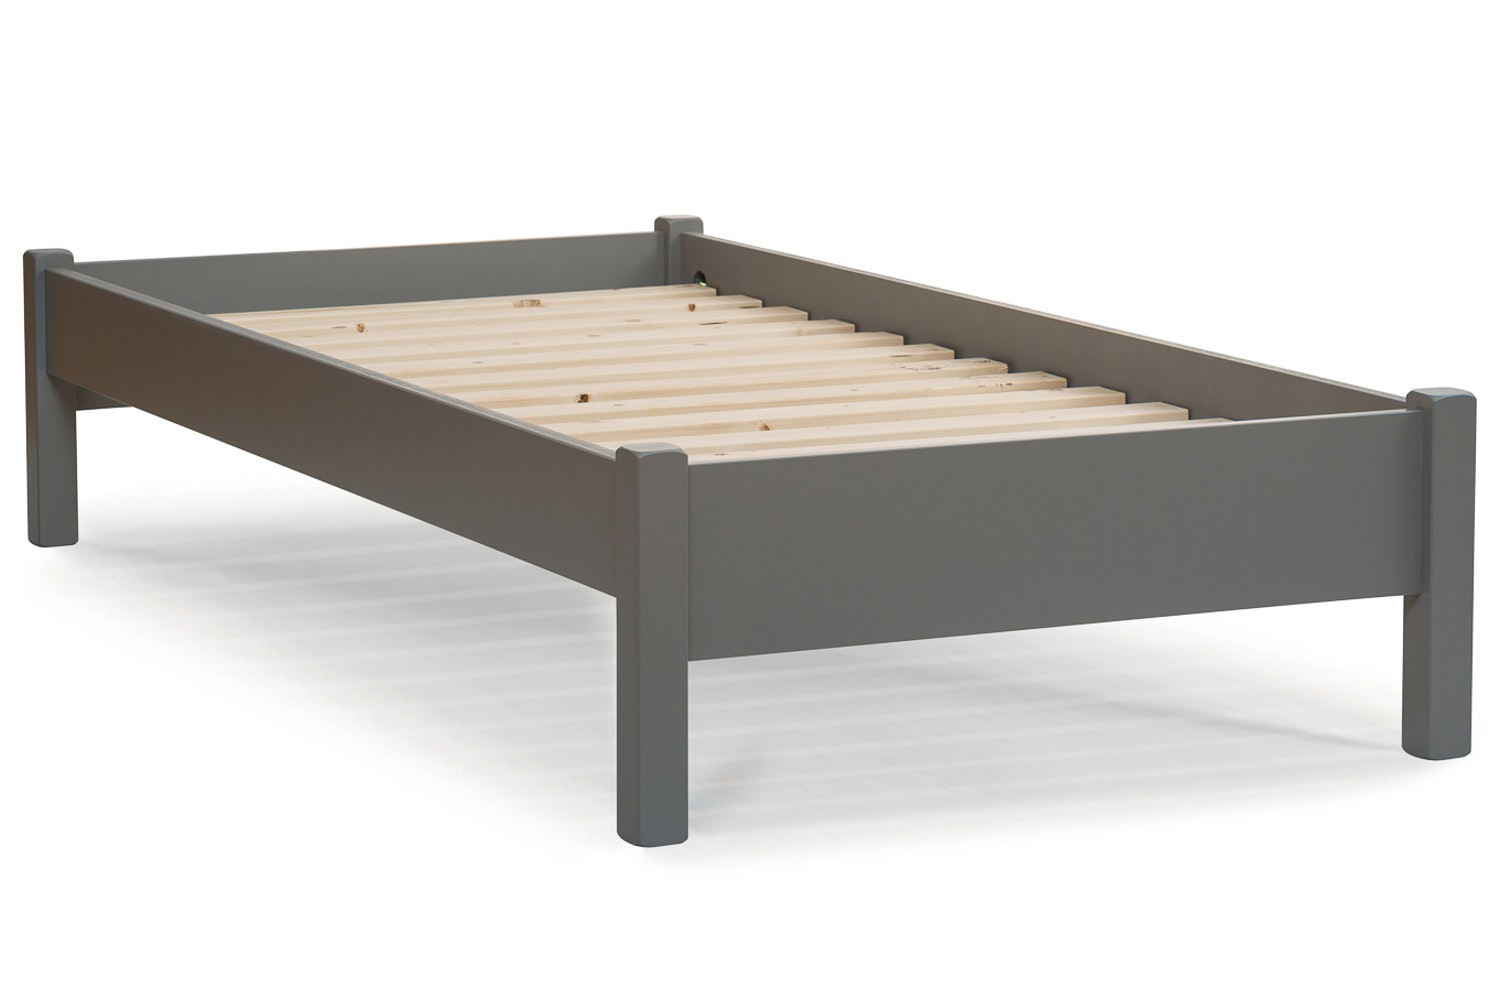 Emily Low Low Bed Frame With Underbed Drawers 3ft Dove Grey